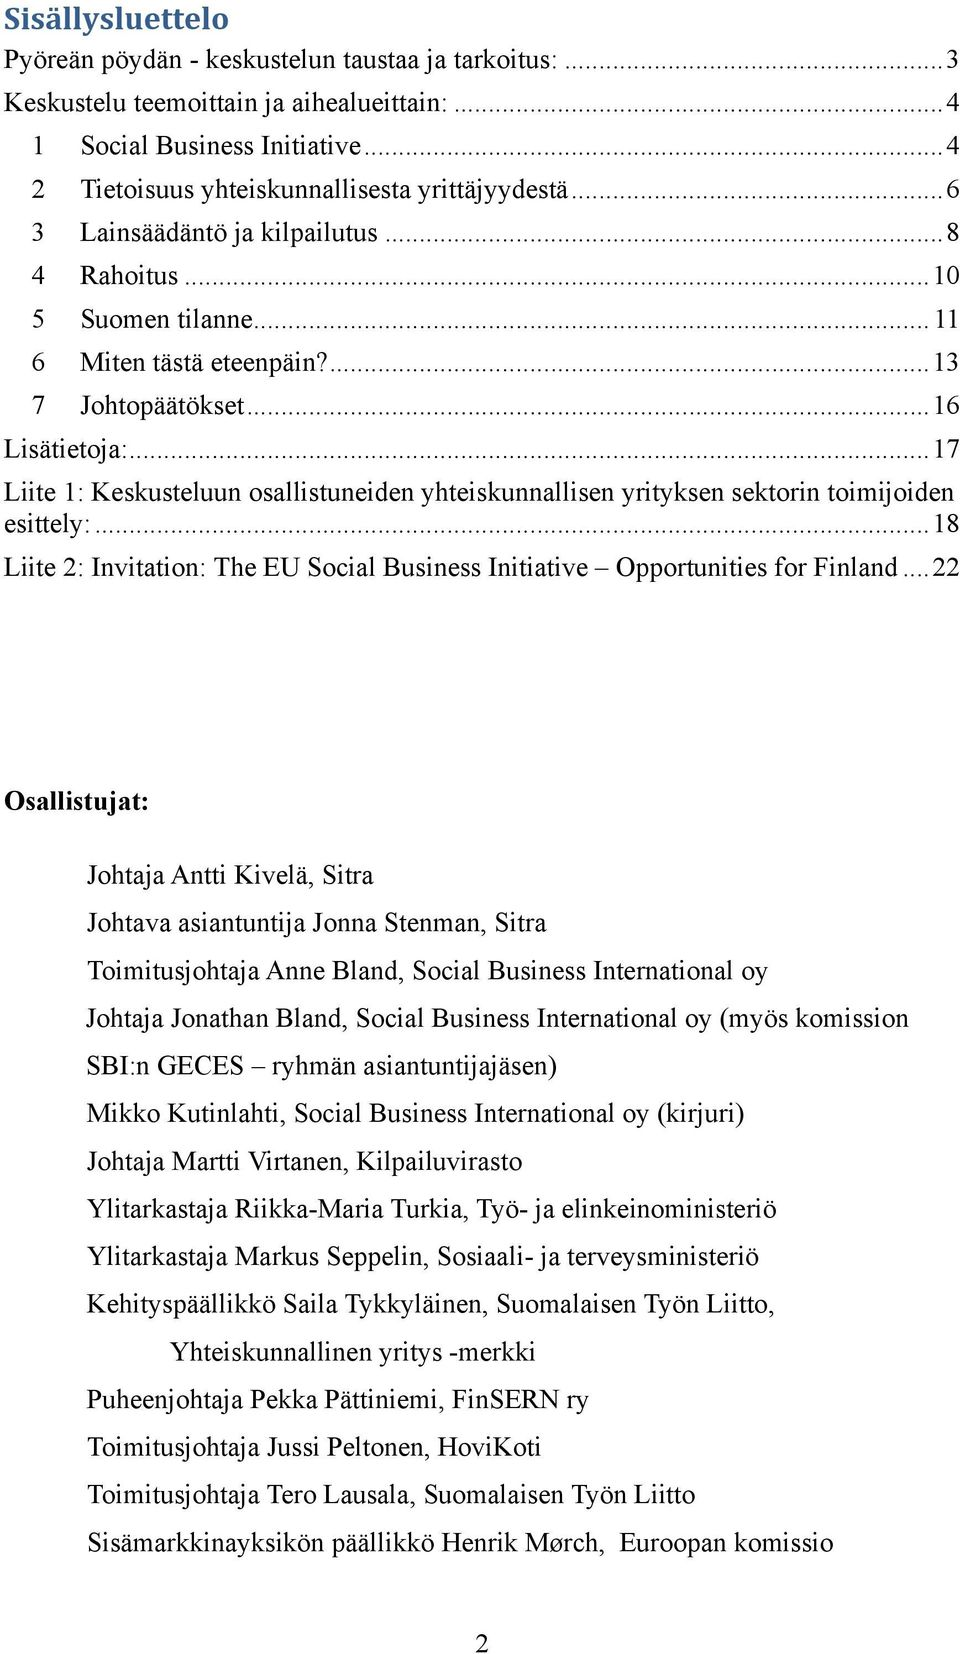 .. 17 Liite 1: Keskusteluun osallistuneiden yhteiskunnallisen yrityksen sektorin toimijoiden esittely:... 18 Liite 2: Invitation: The EU Social Business Initiative Opportunities for Finland.